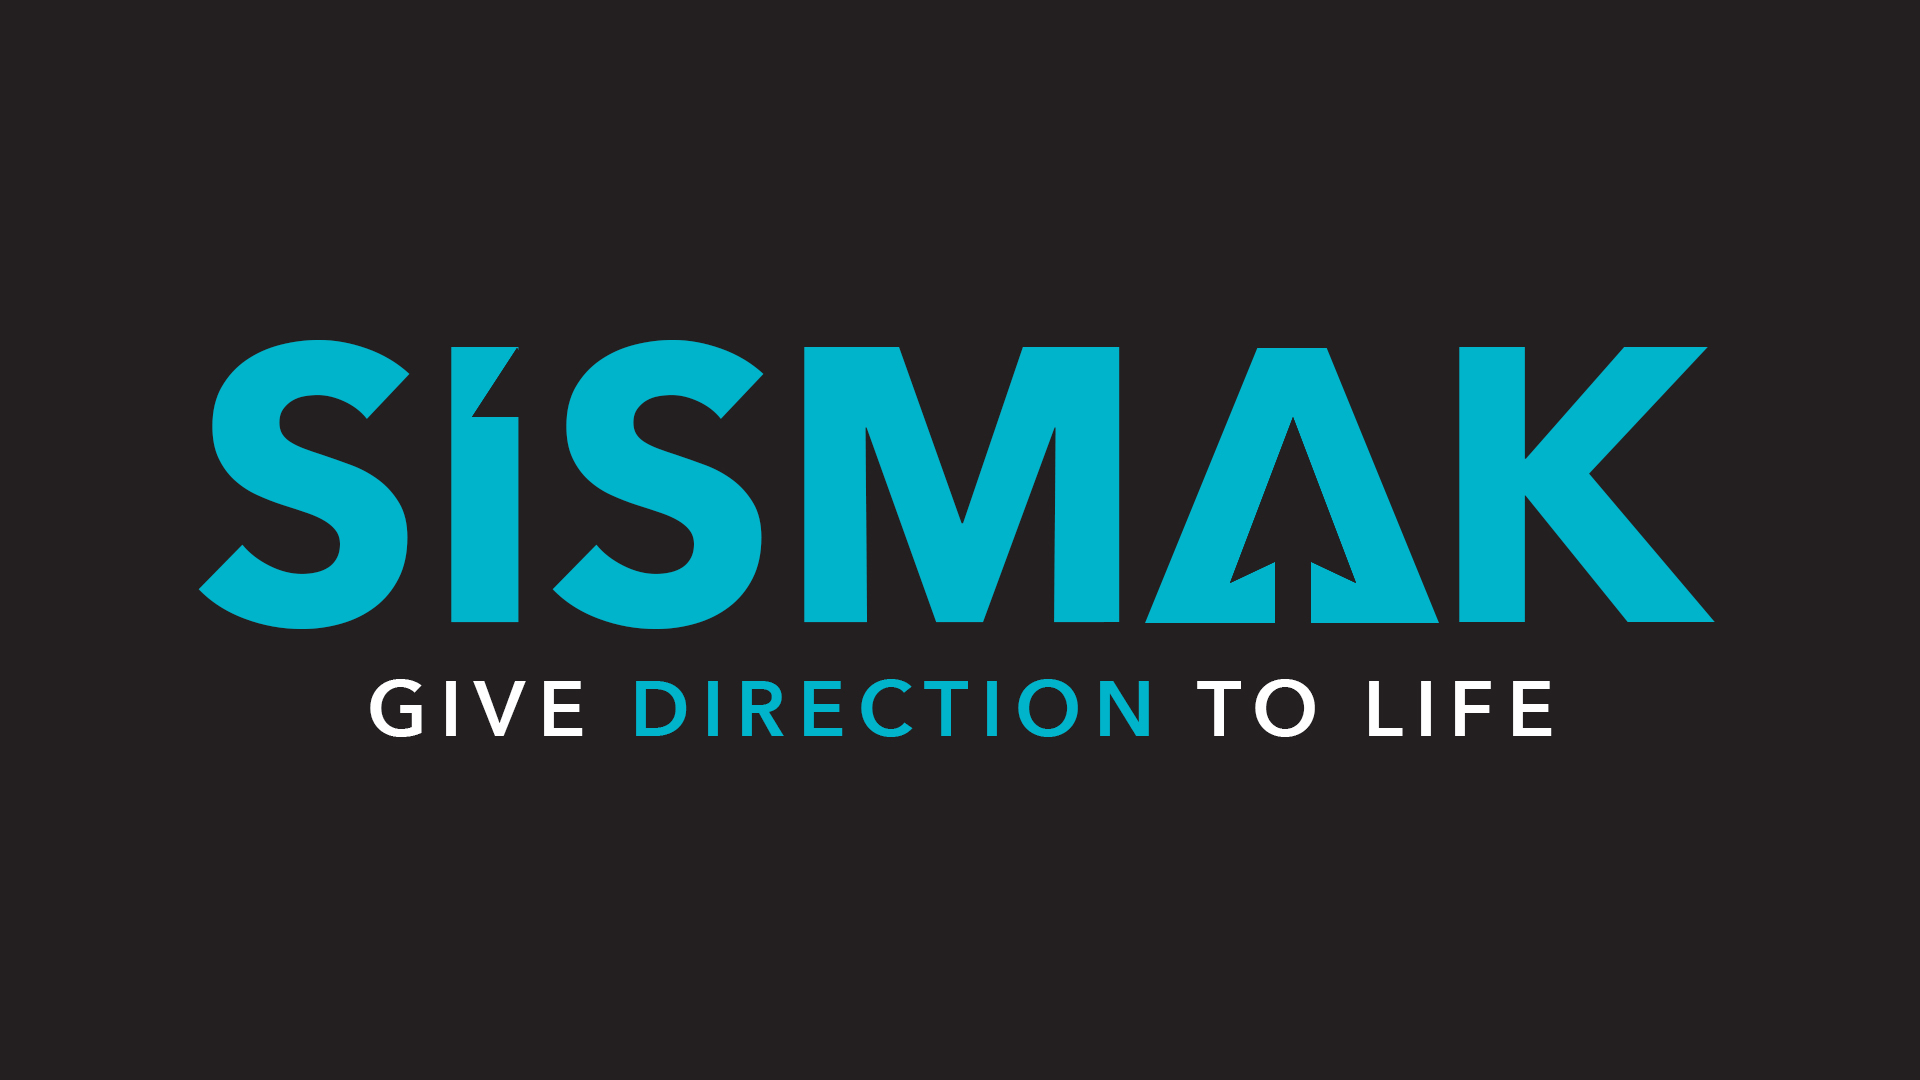 sismak-logo-give-direction-to-life